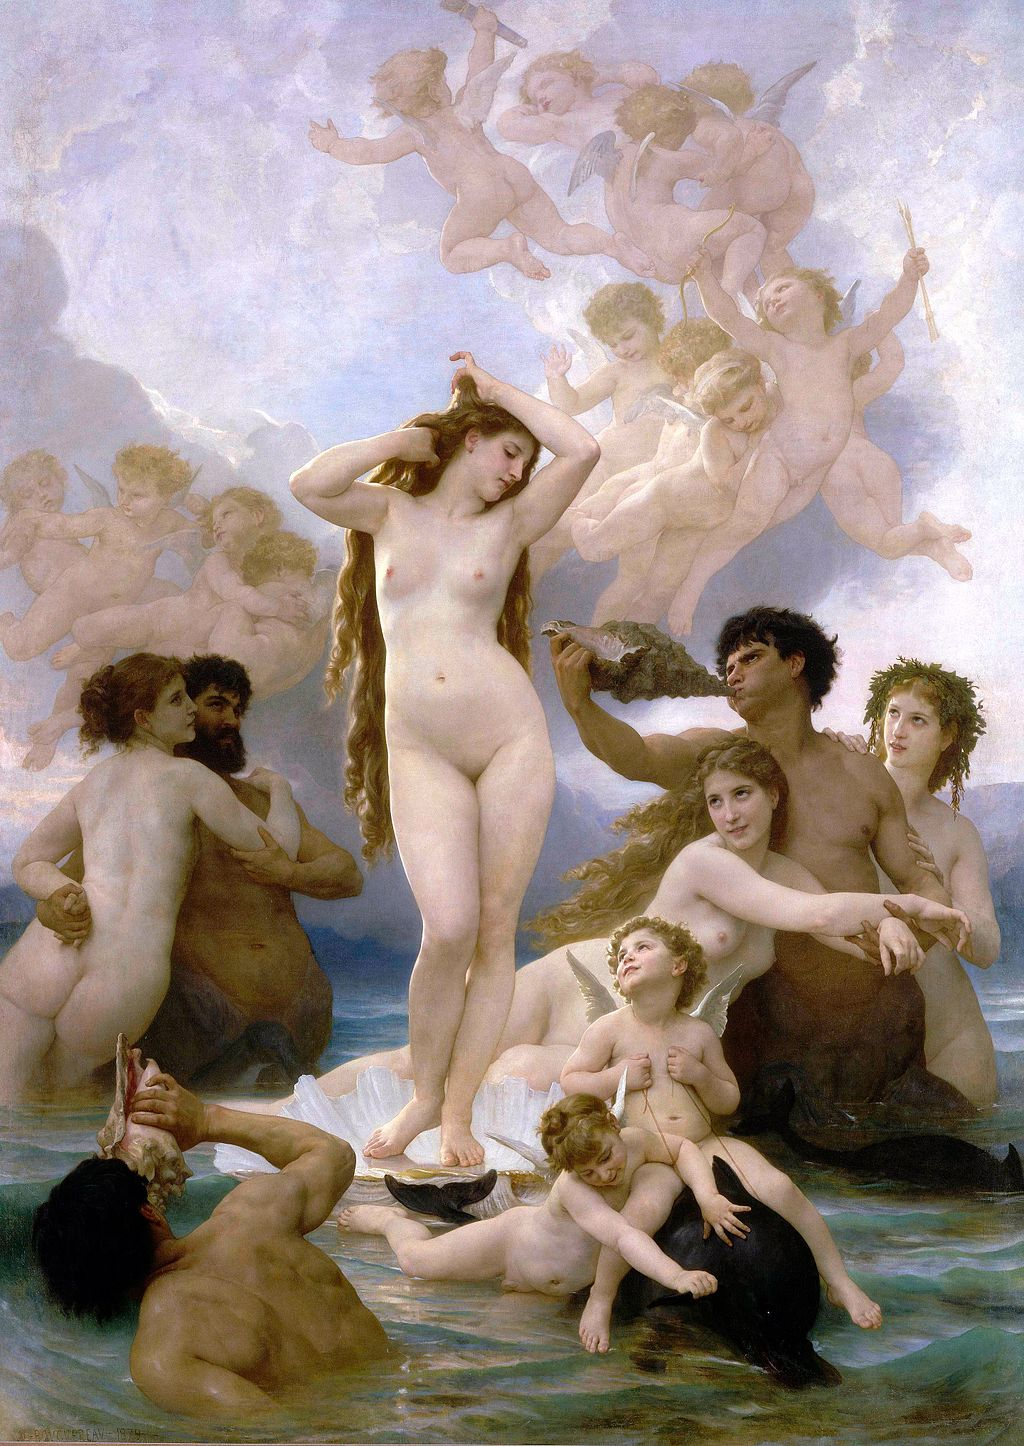 Bouguereau 1825-1905) The Birth of Venus (1879)quelle:wiki